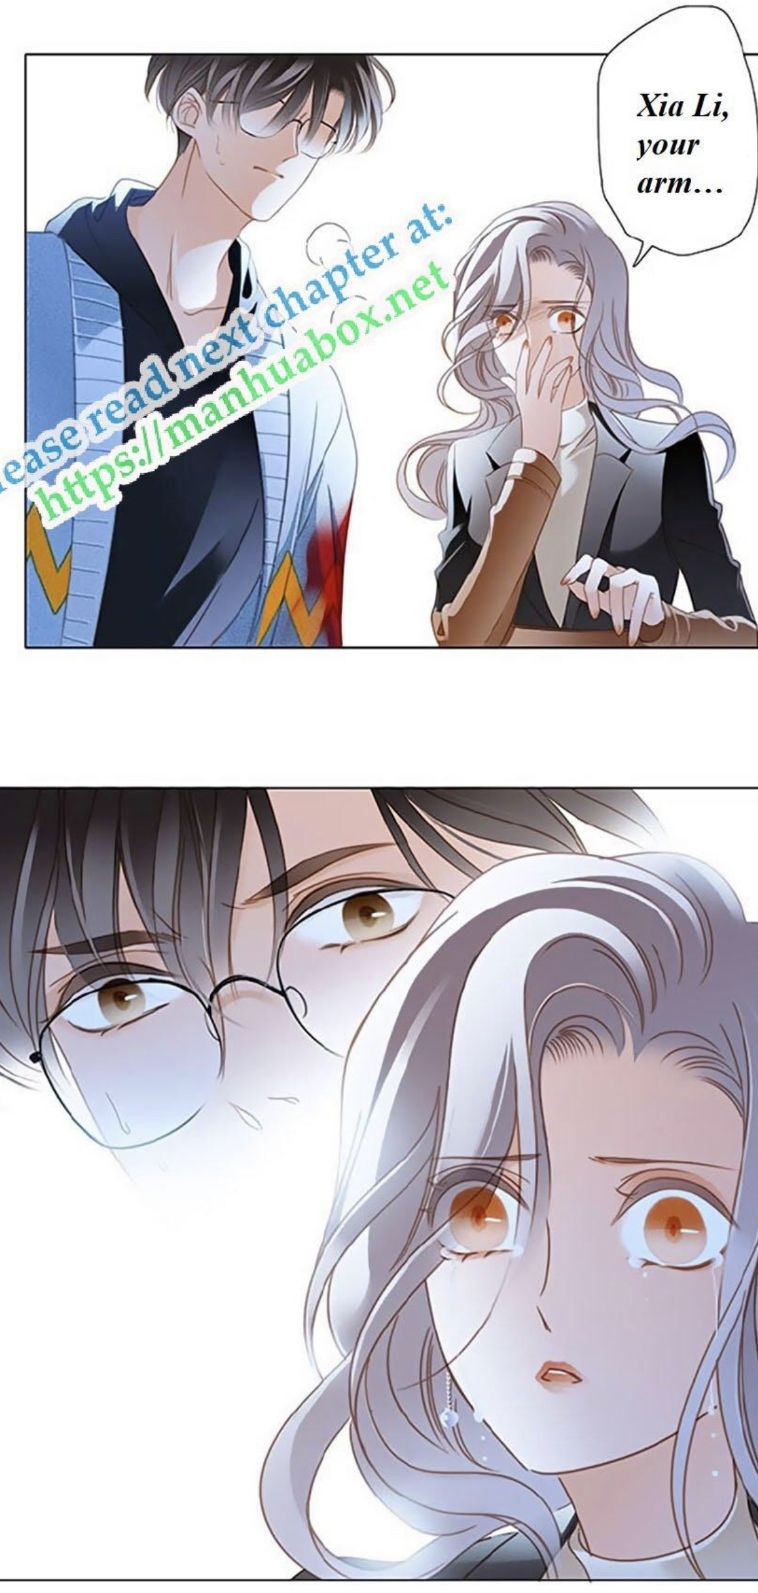 Pin by Animemangaluver on 1st Kiss I Don't Want To